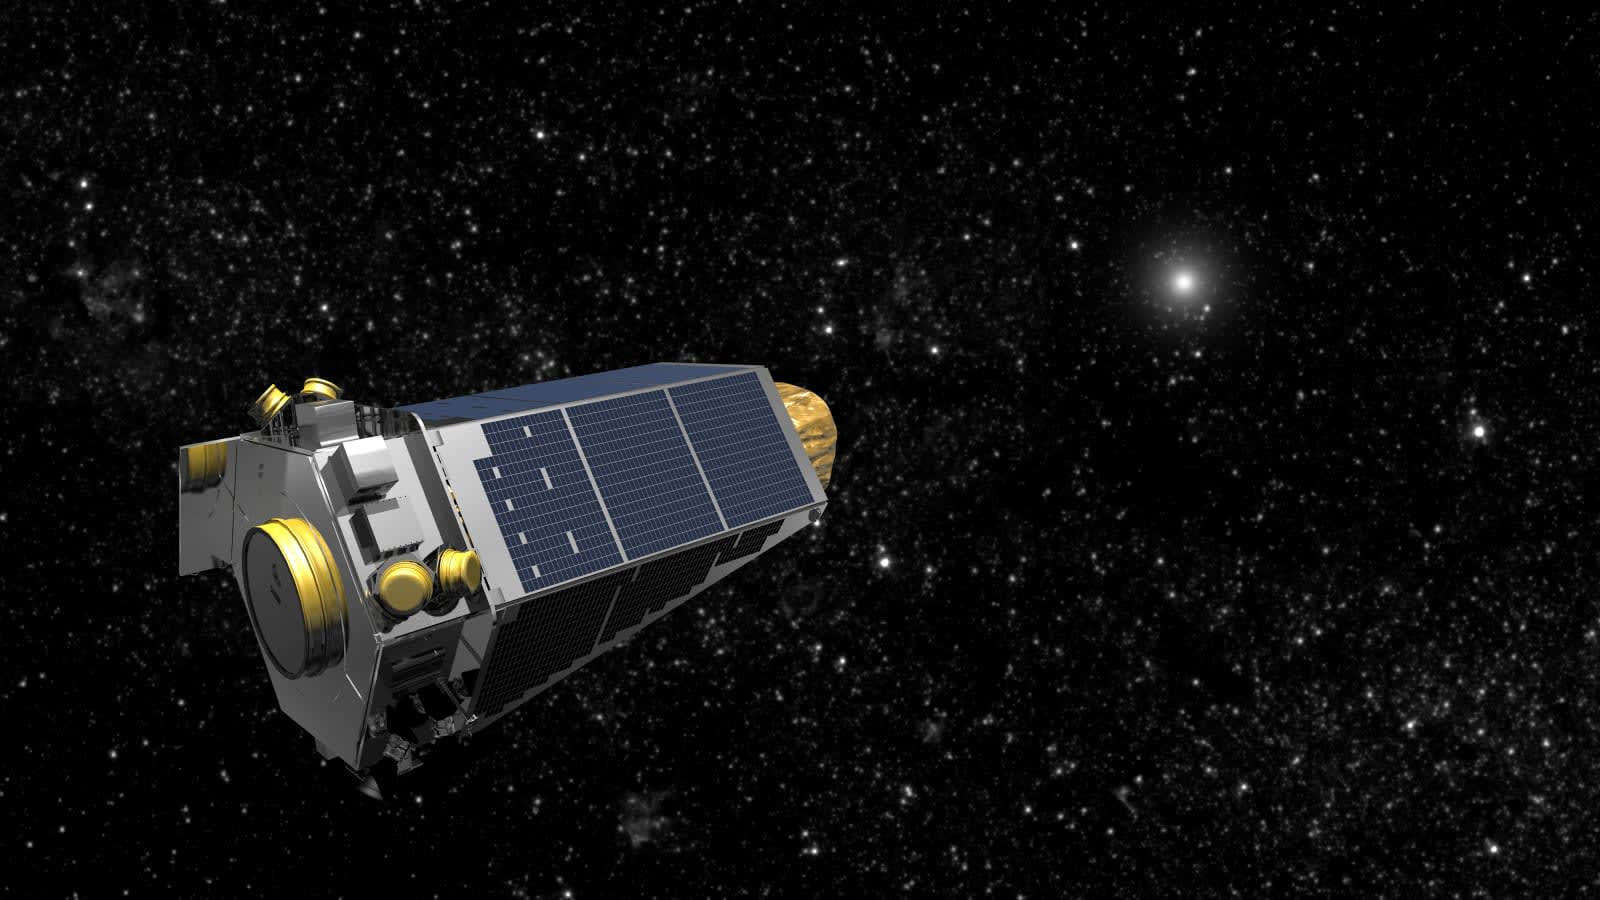 planet hunting kepler telescope declares that it is not in fact dead